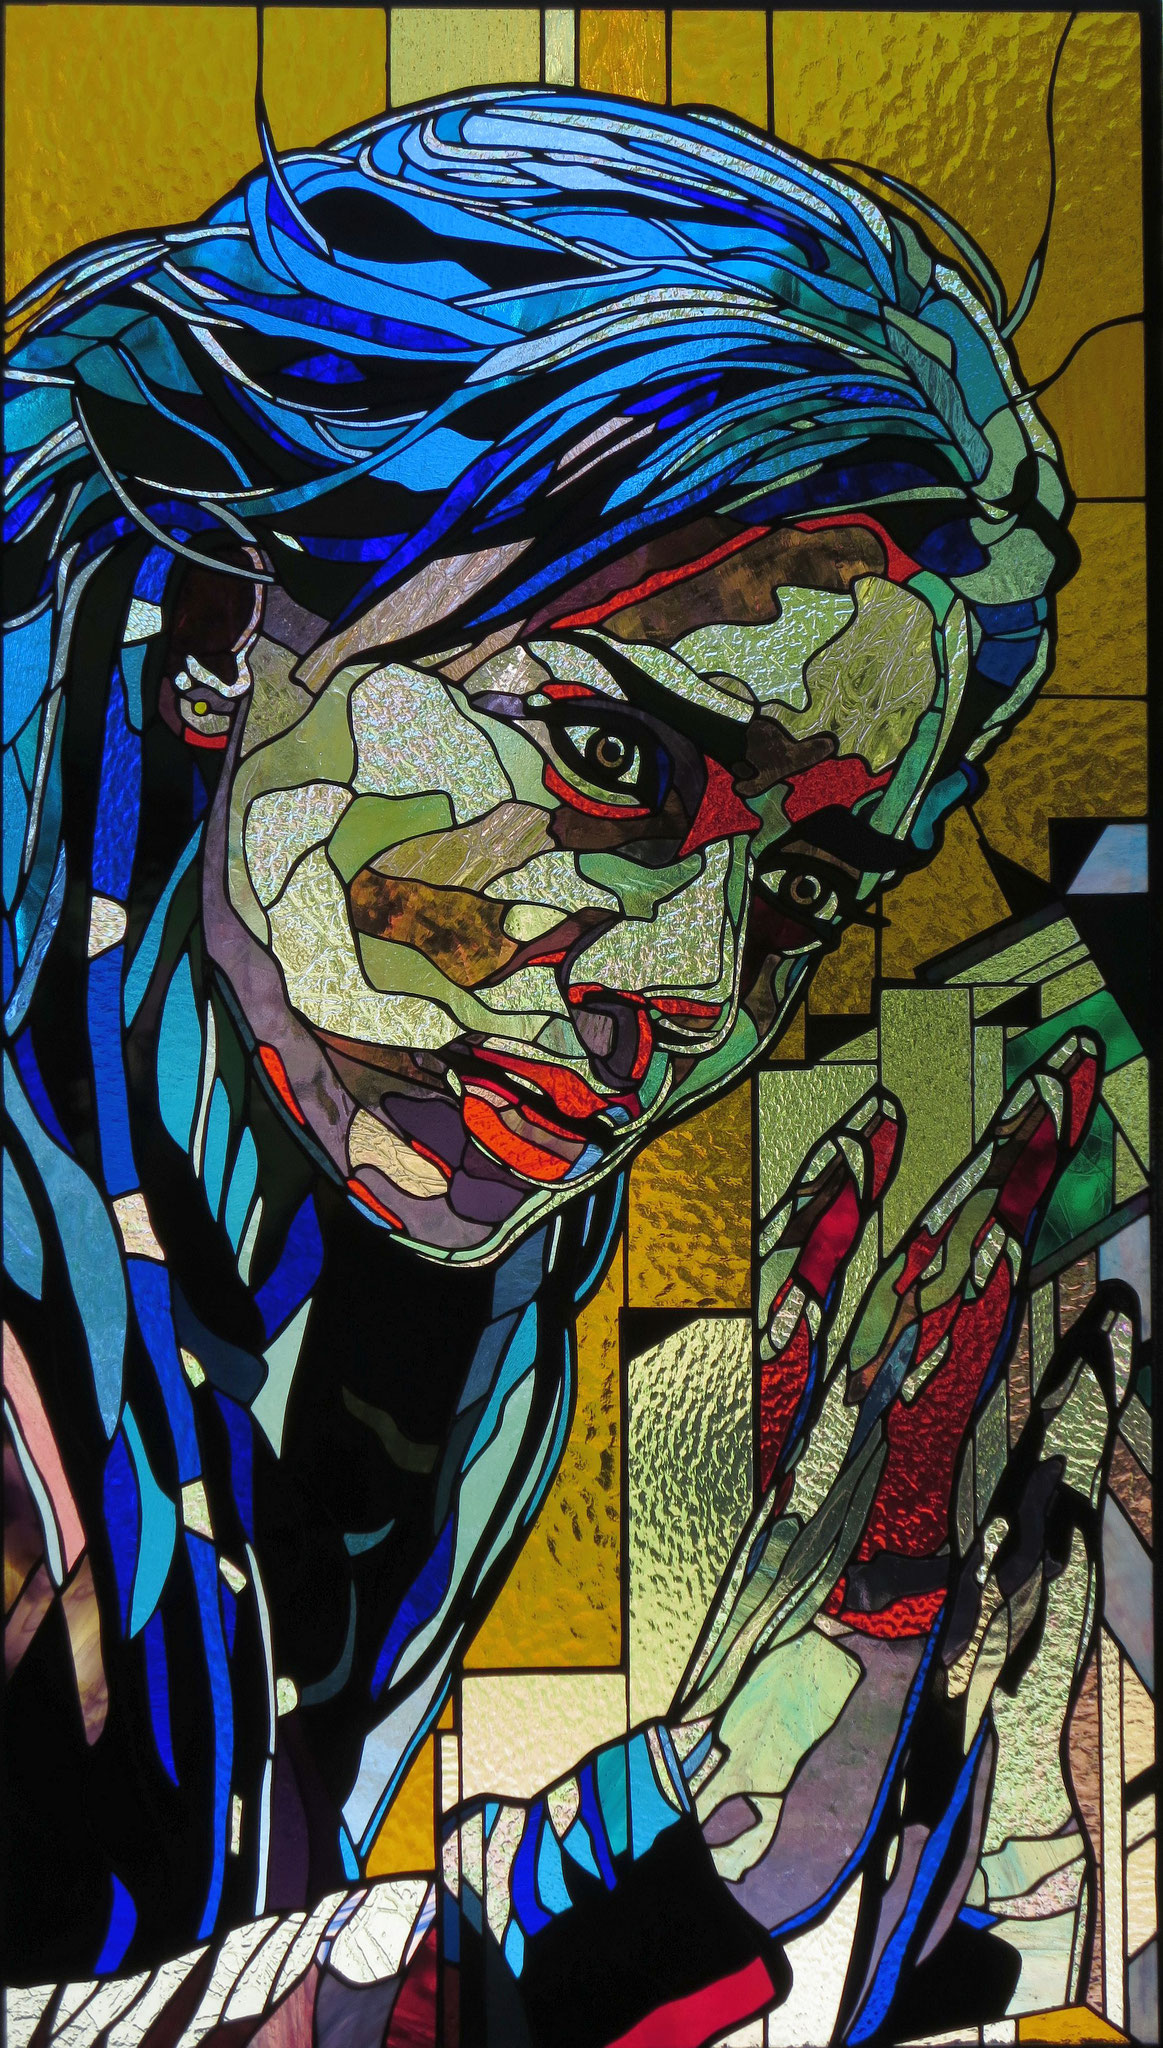 EXPLORATION 26.5 x 47 inches stained glass